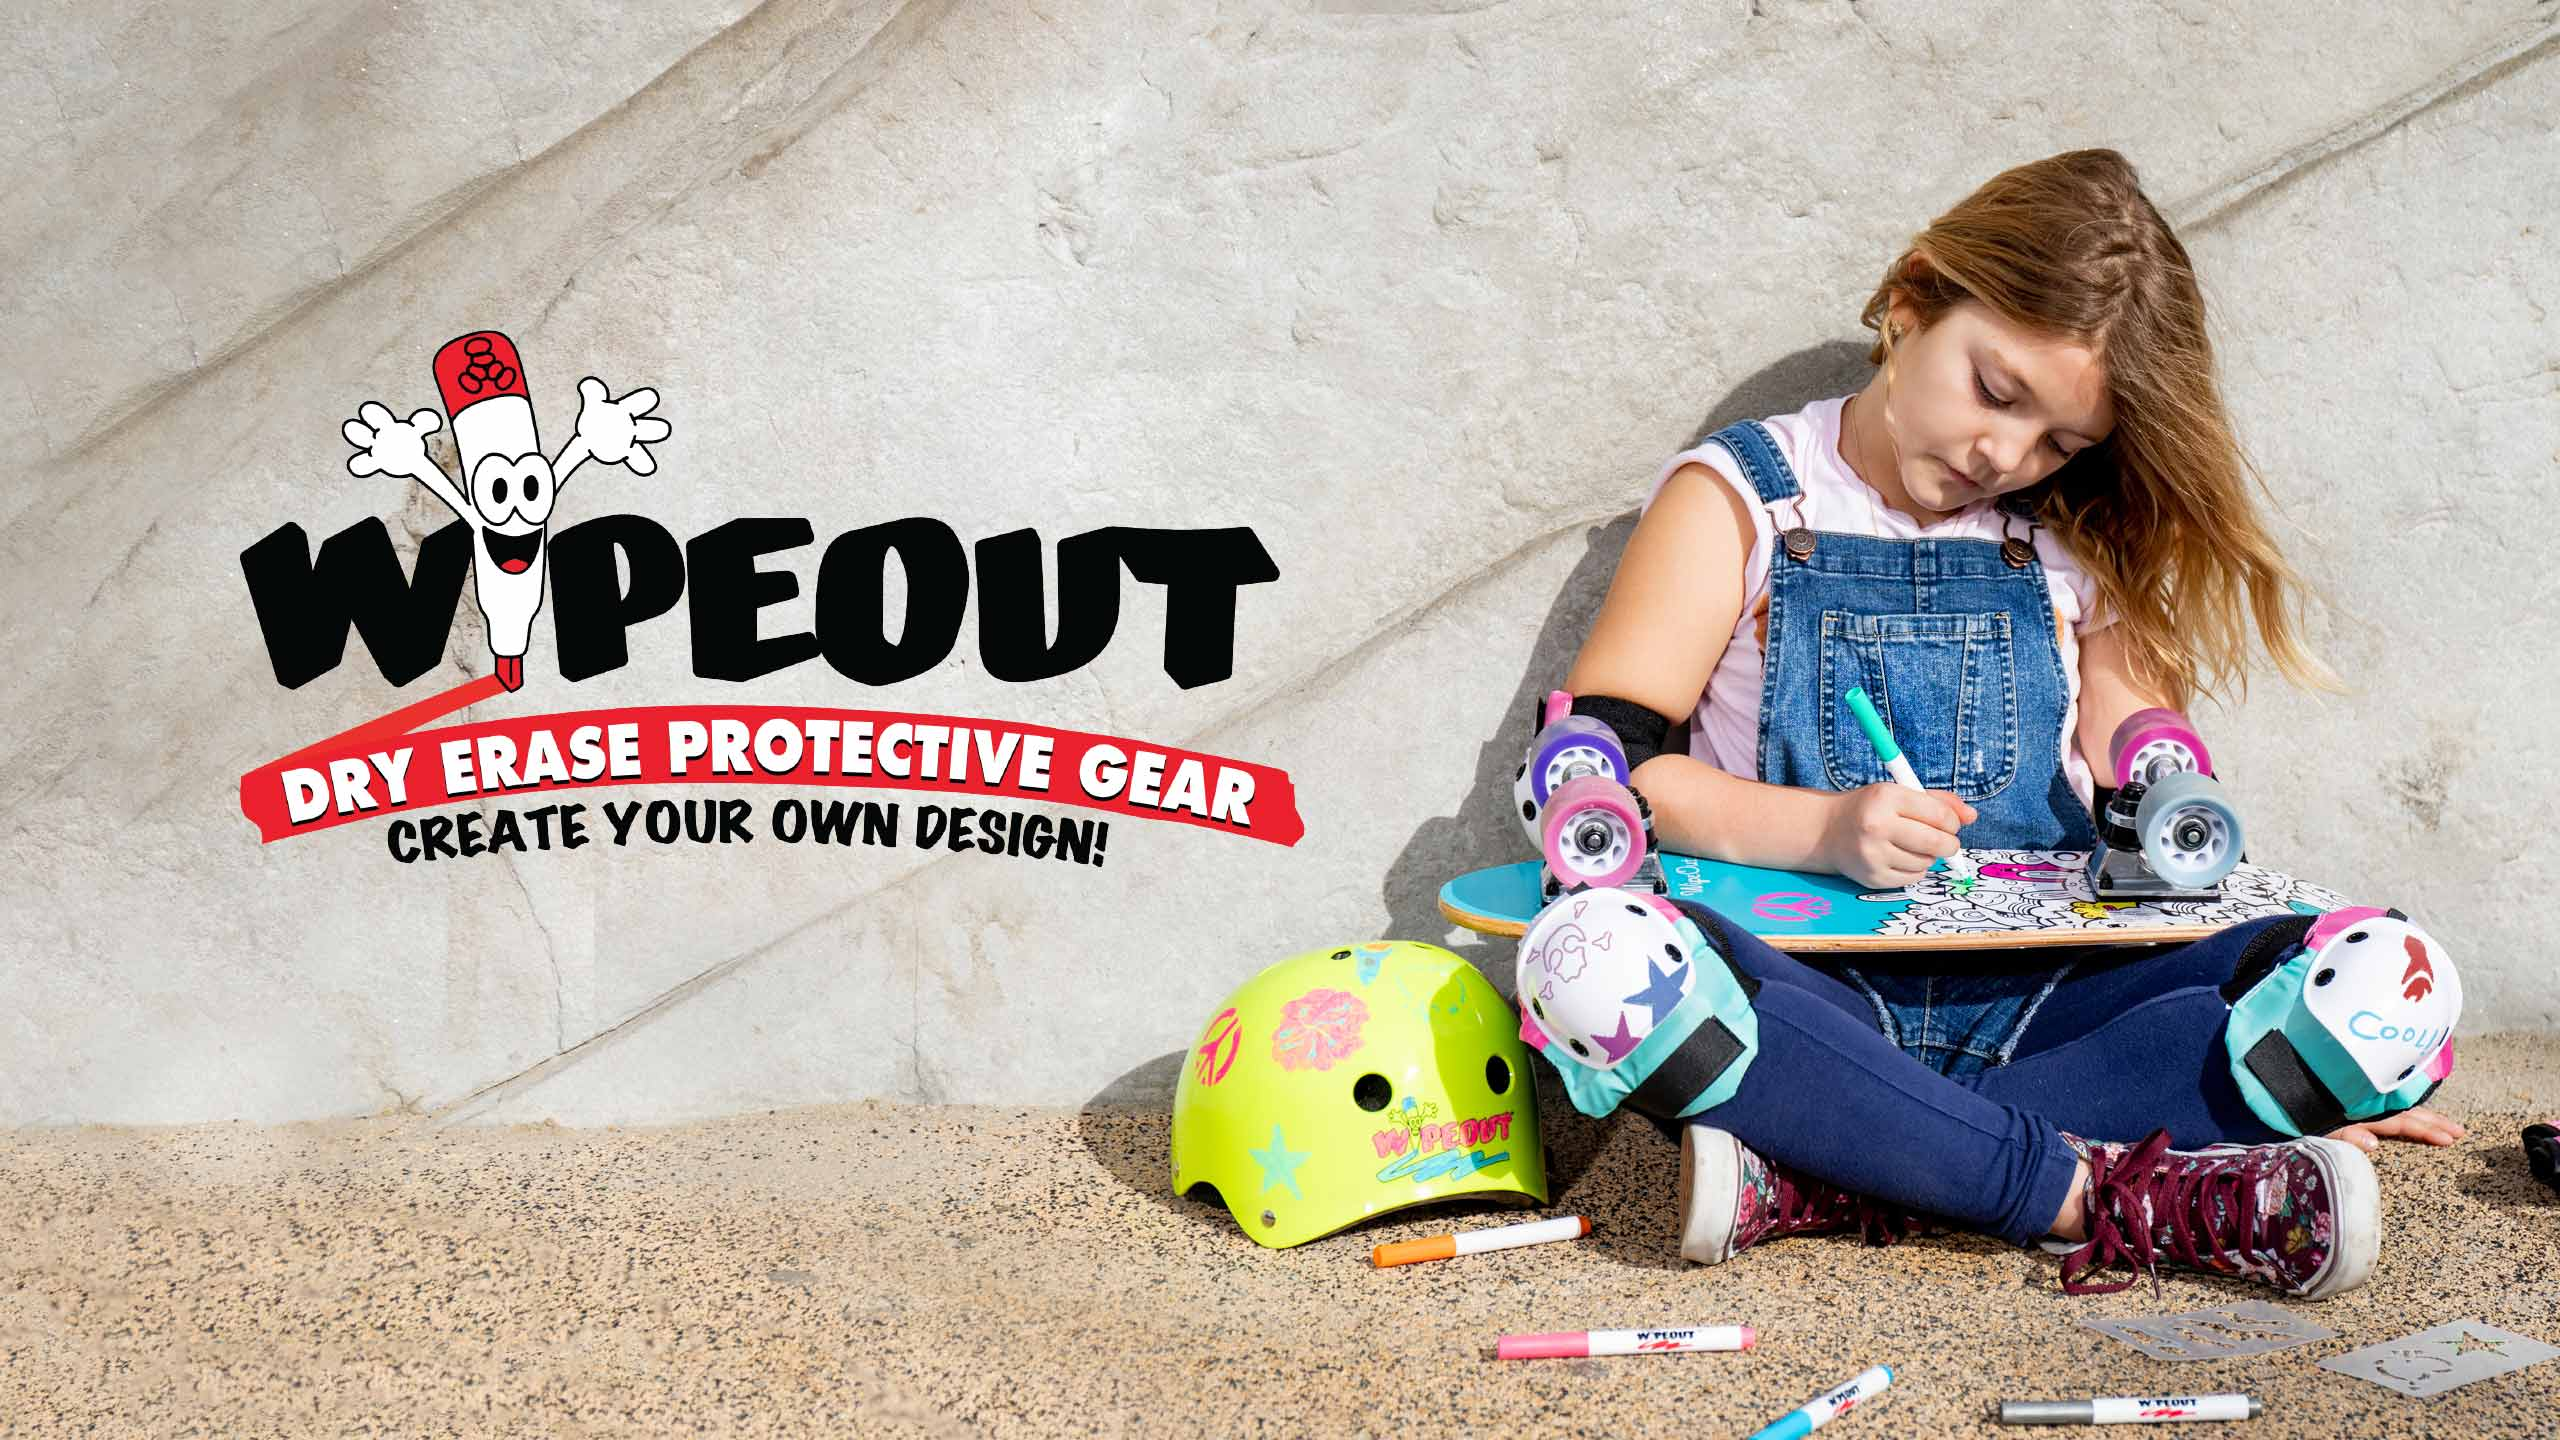 Wipeout Protective Gear